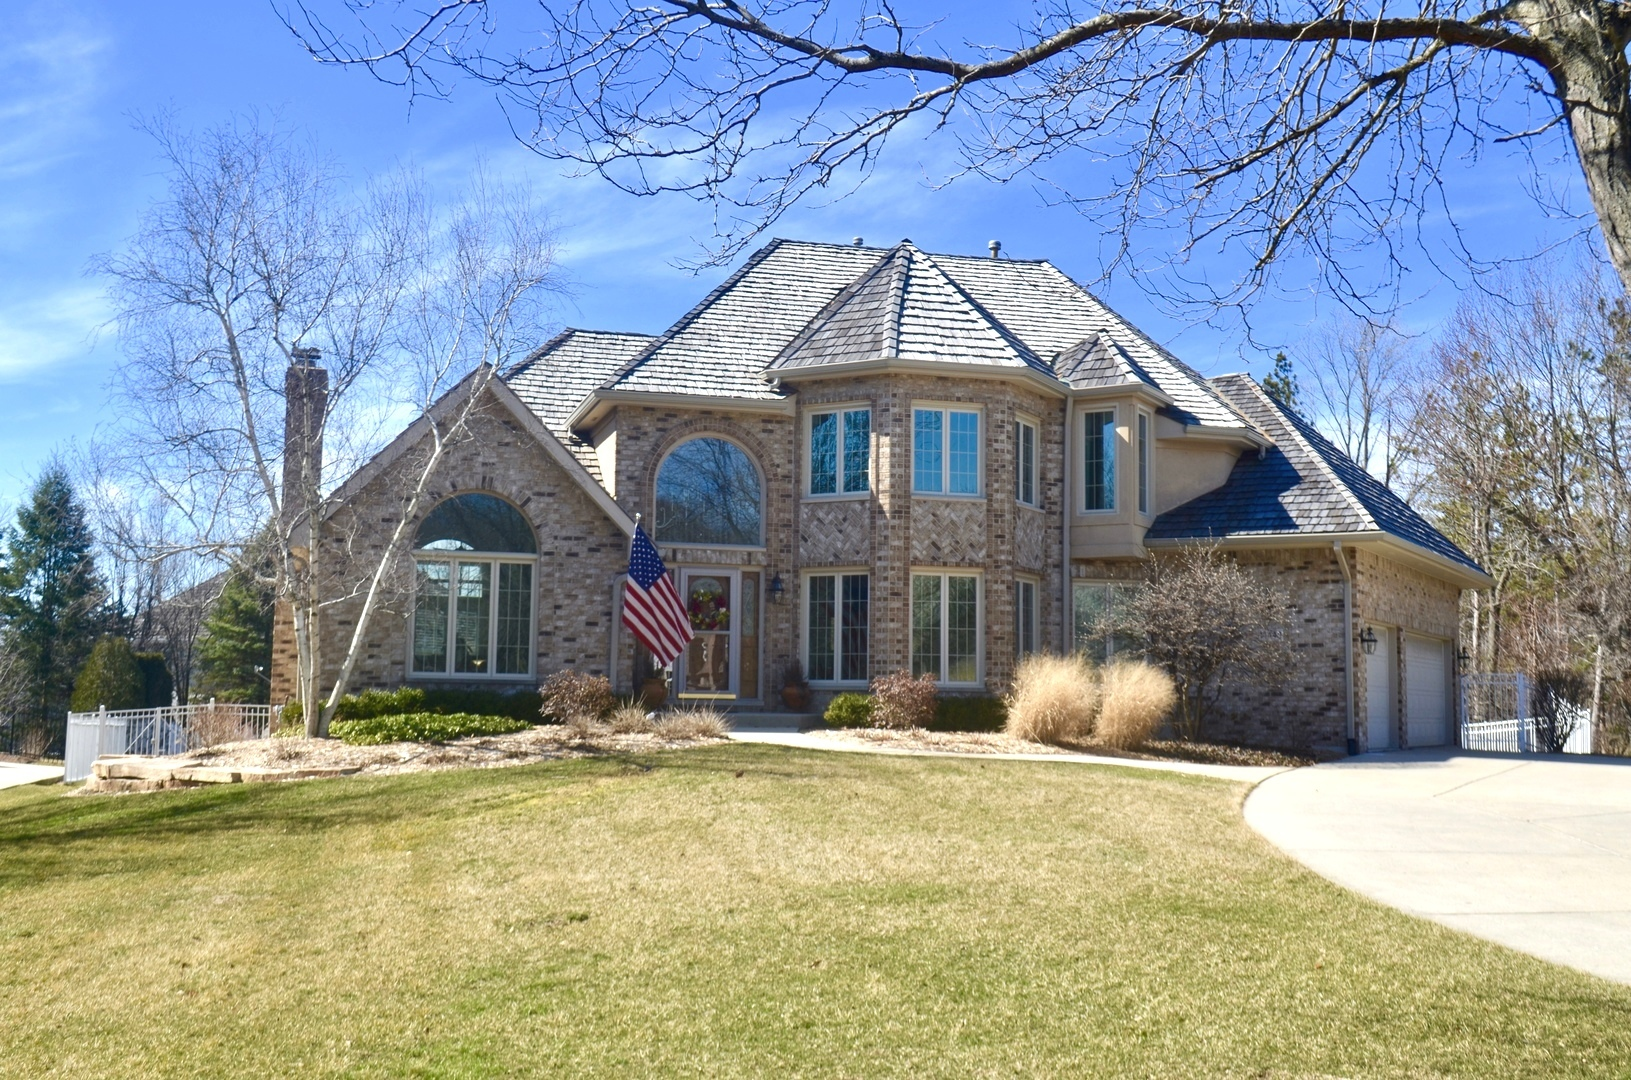 14440 South 80th Avenue, Orland Park, Illinois